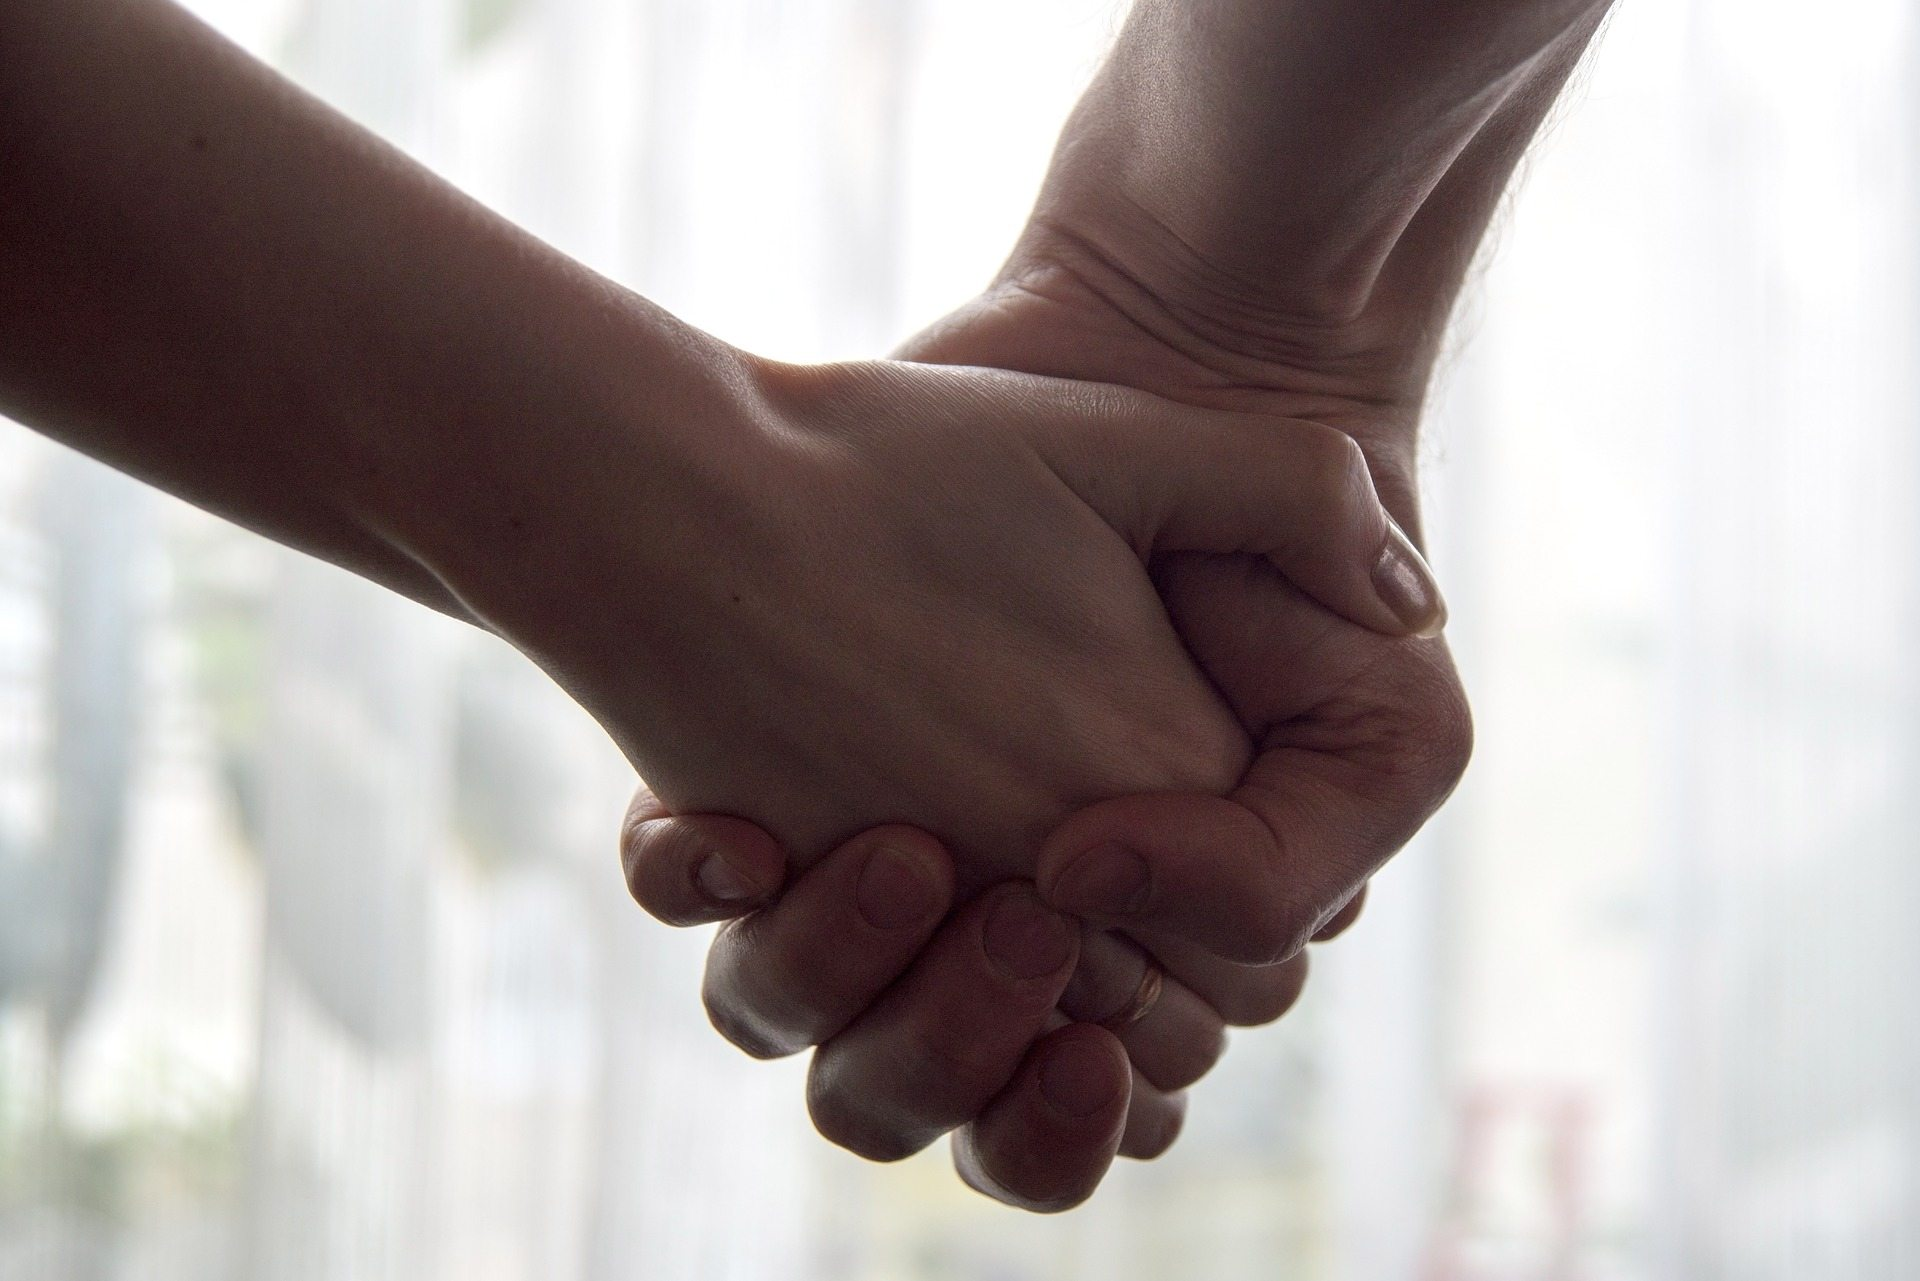 Change marriage for better - Pixabay hands-2802891_1920